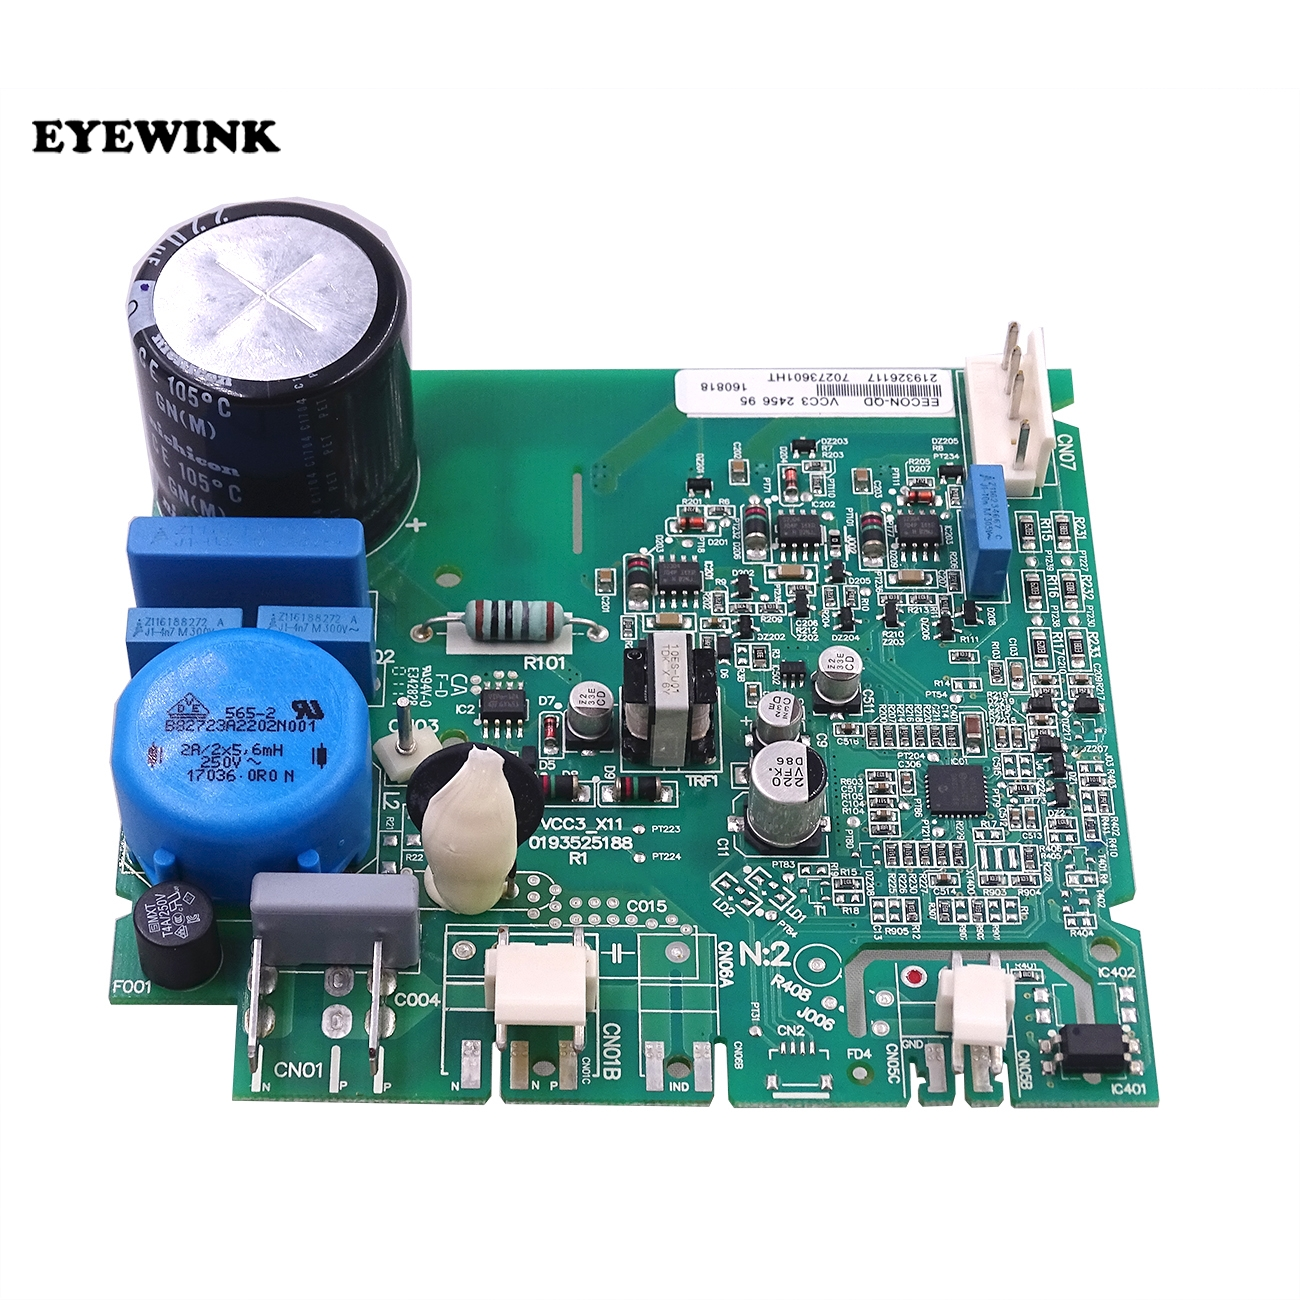 Electronics Production Machinery New For Haier Refrigerator Freezer Inverter Board Eecon-qd Vcc3 Control Board Pc Board Professional Replacement Part Gift Cheap Sales